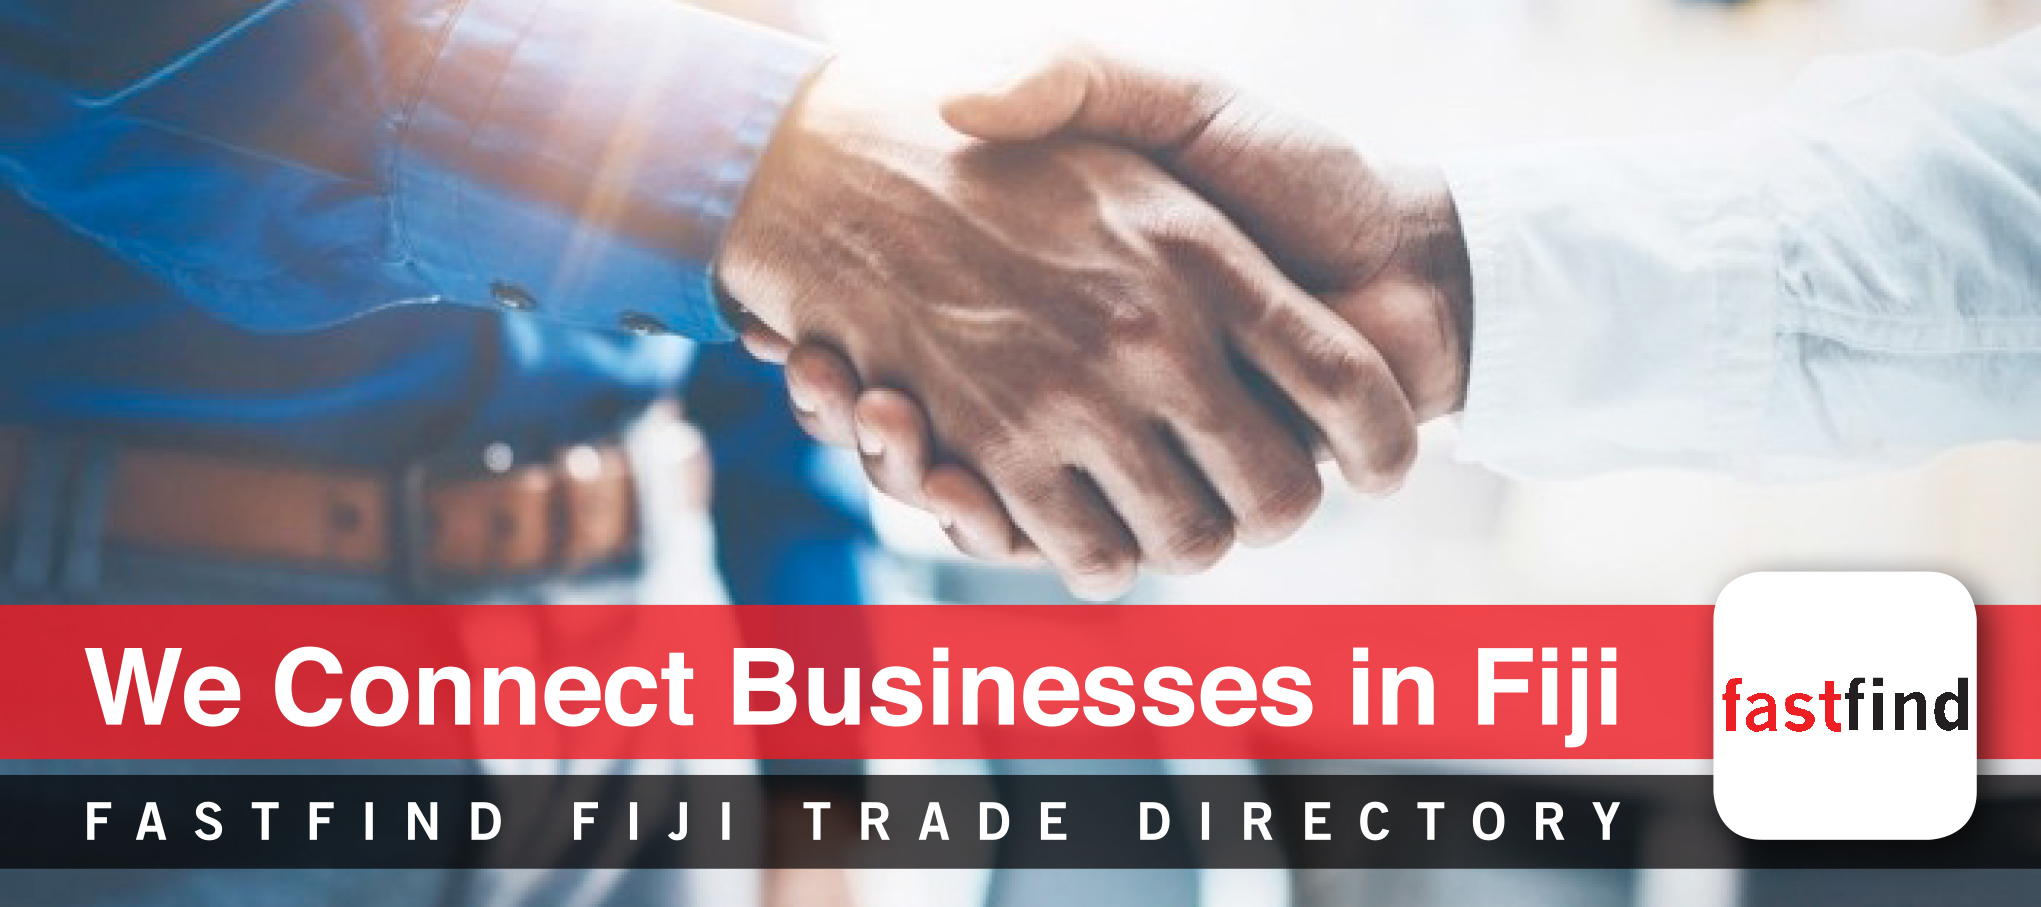 FastFind Fiji Trade Directory - Home